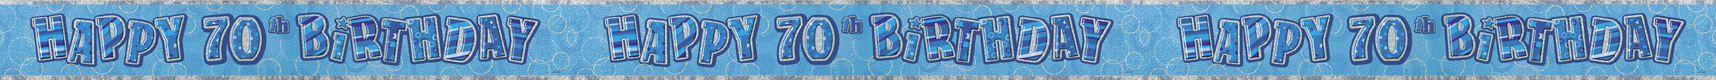 70th birthday banner blue